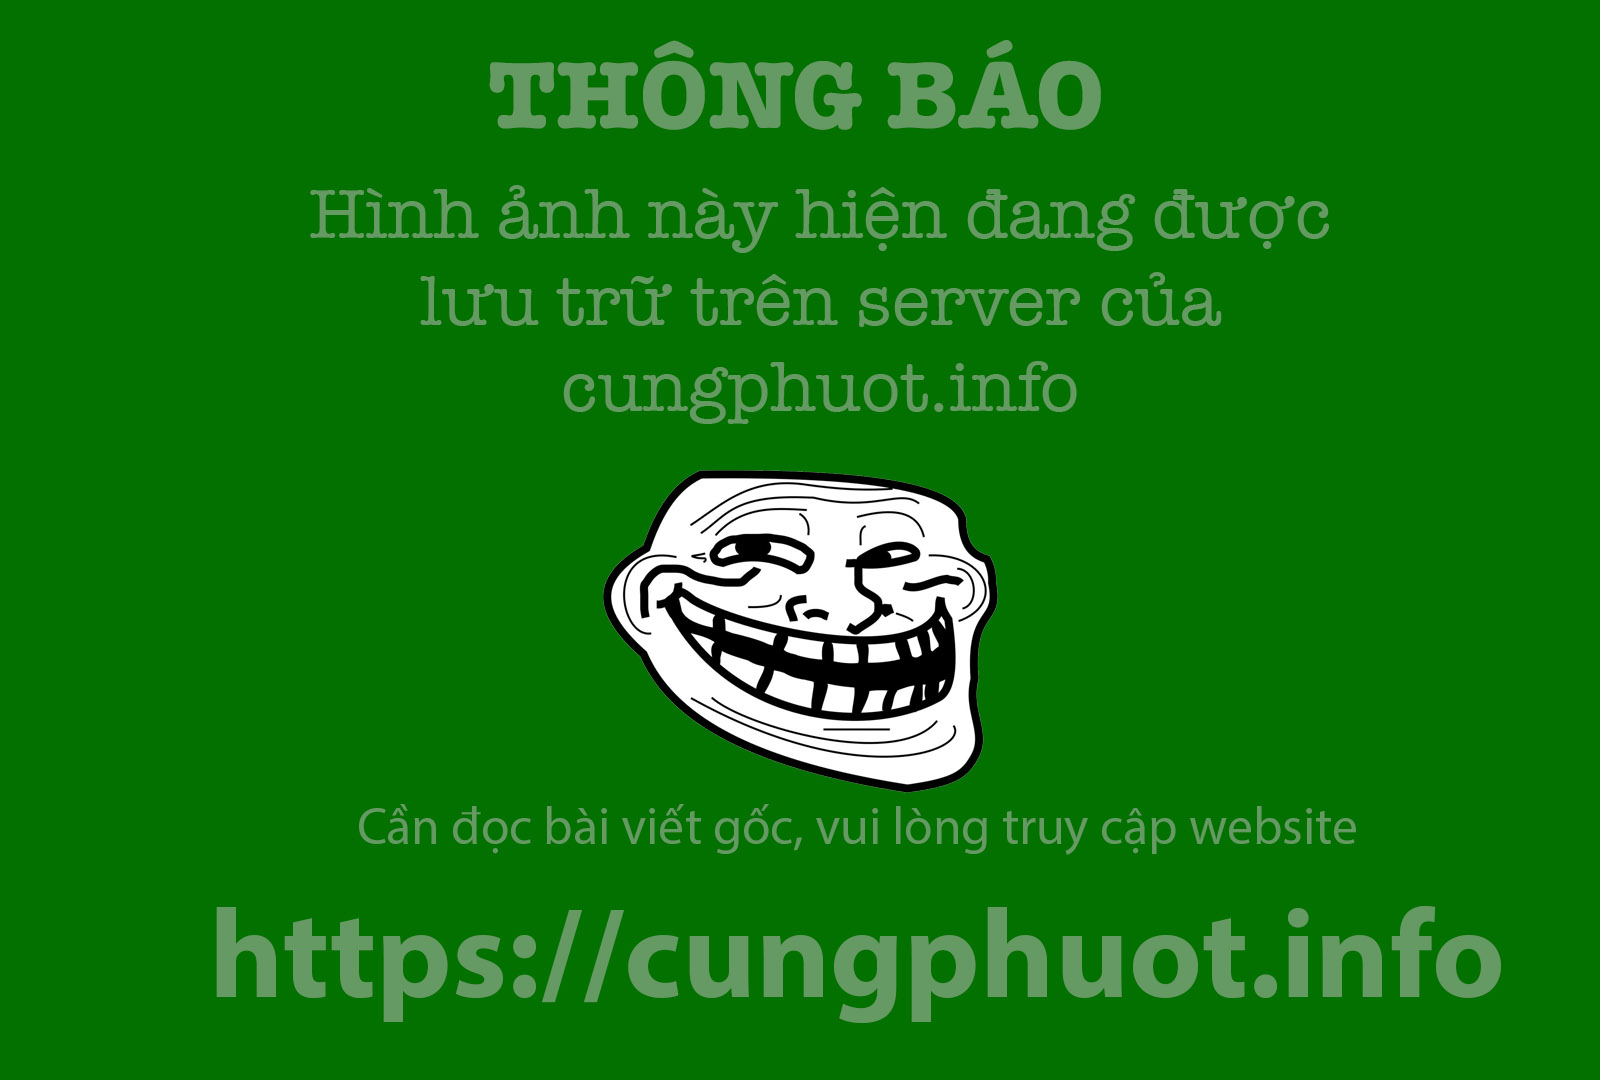 May von nui tren cong troi Muong Long hinh anh 13